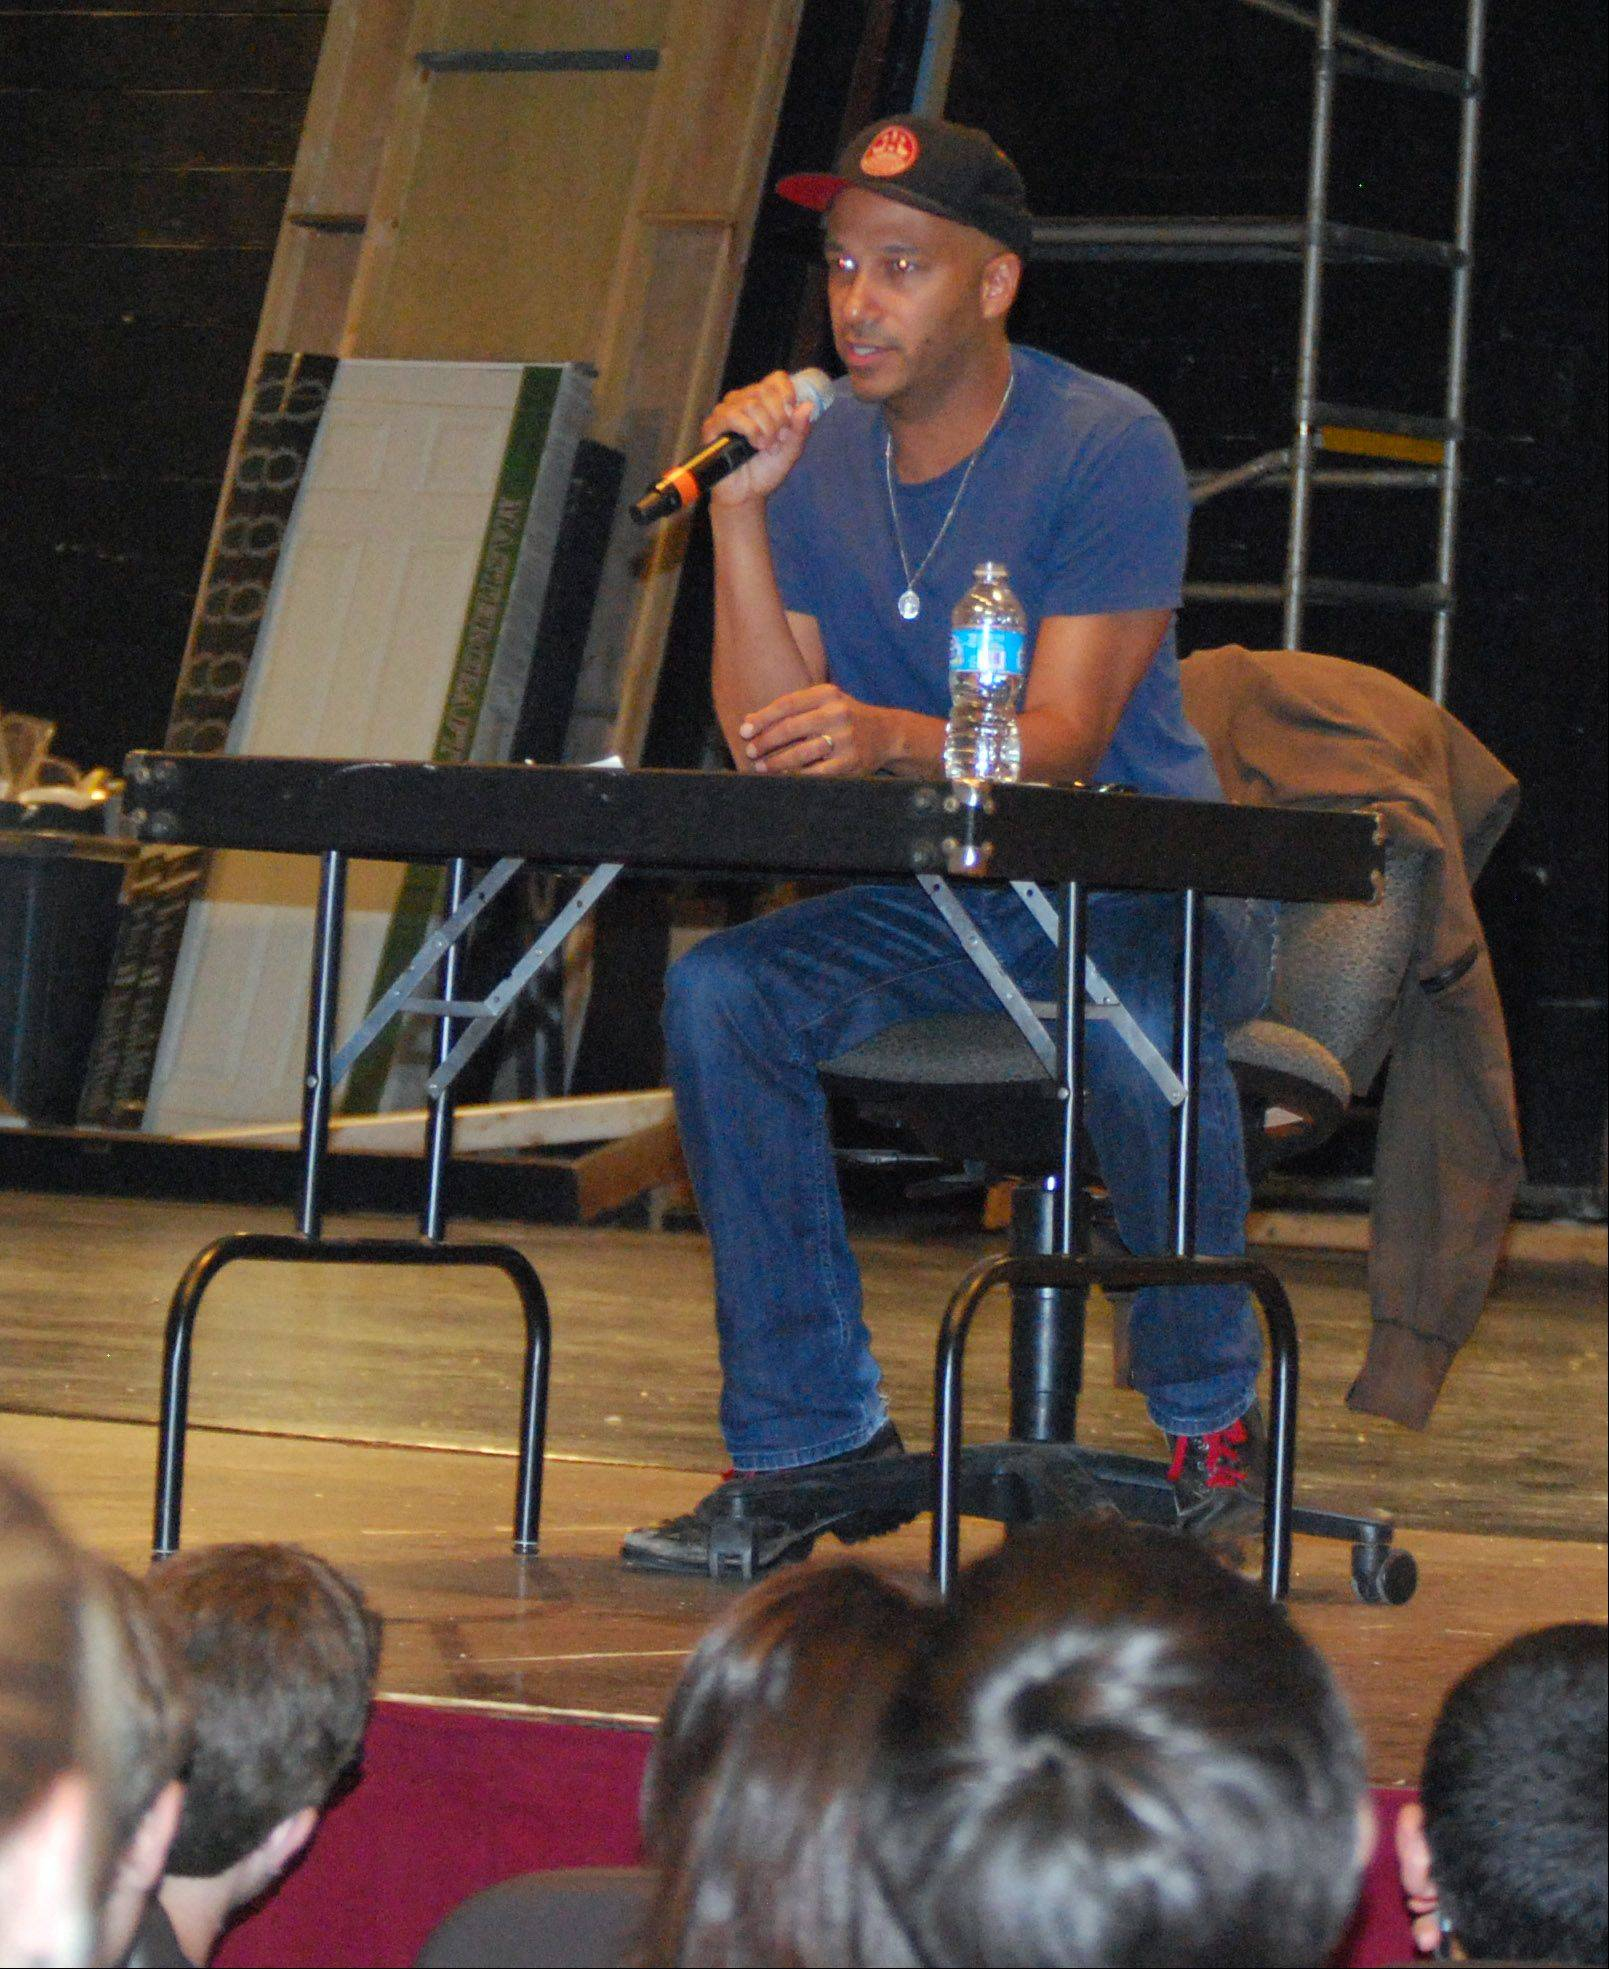 Libertyville High School graduate and rock star Tom Morello visited his alma mater during homecoming recently.